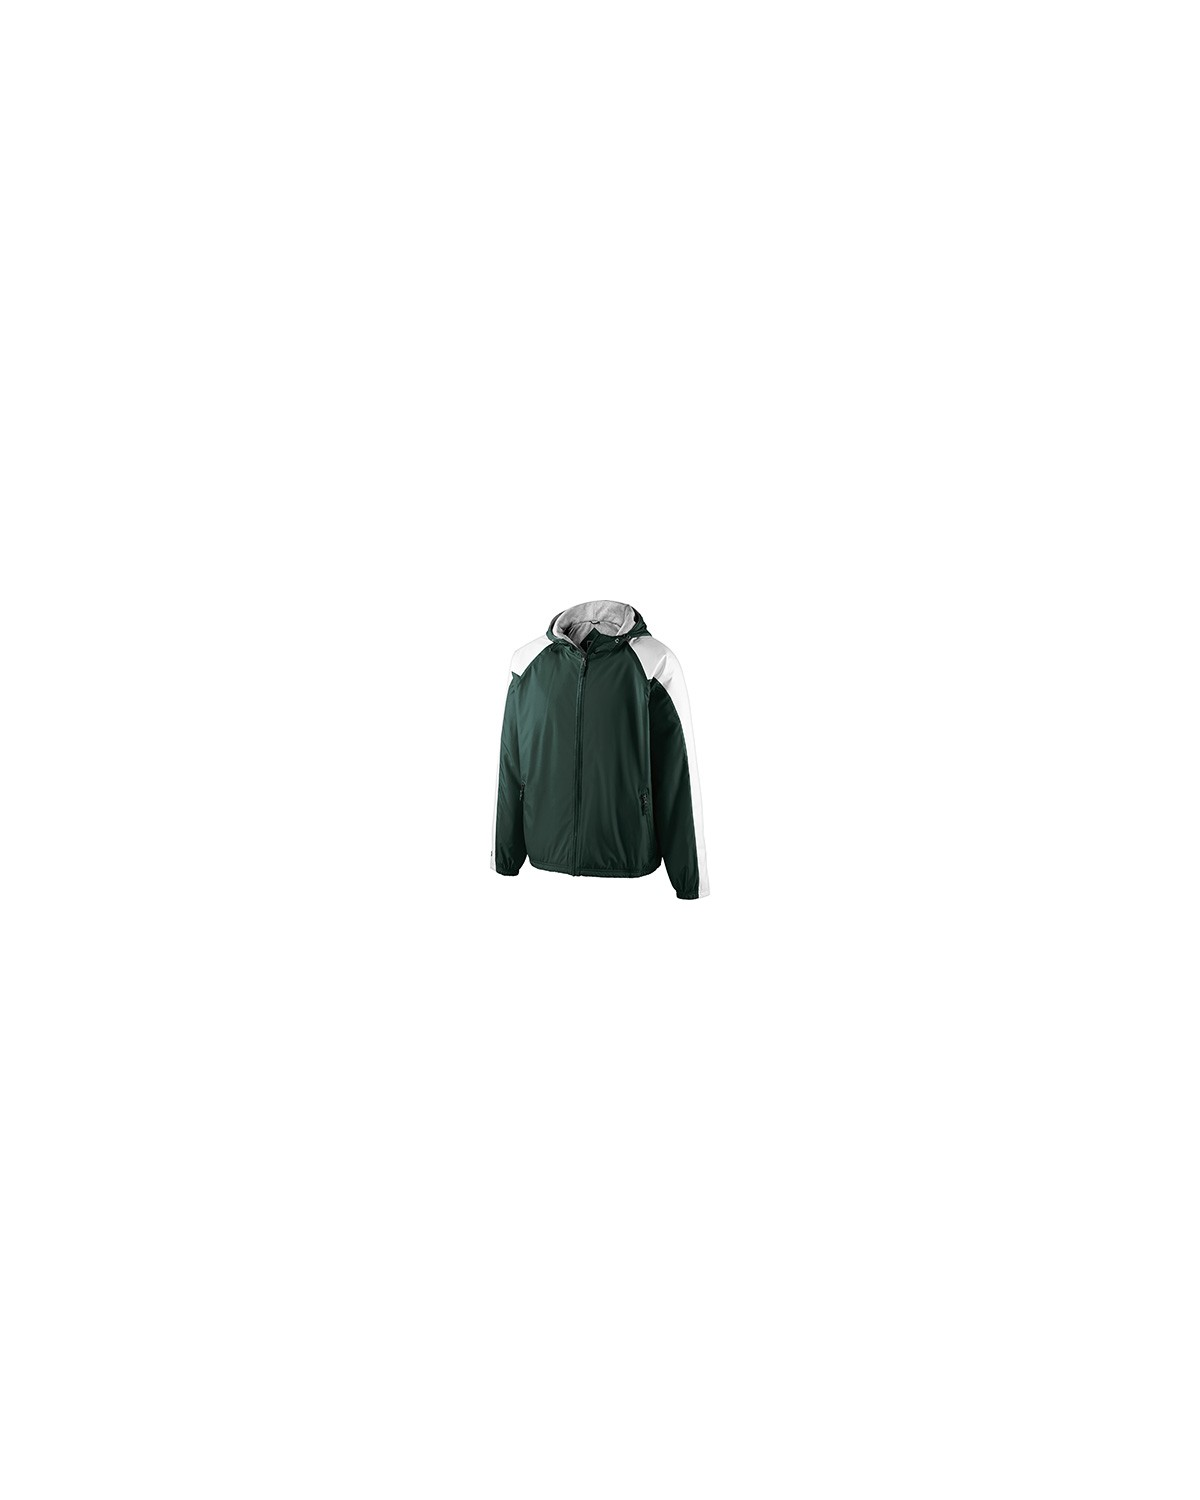 229111 Holloway DARK GREEN/WHT